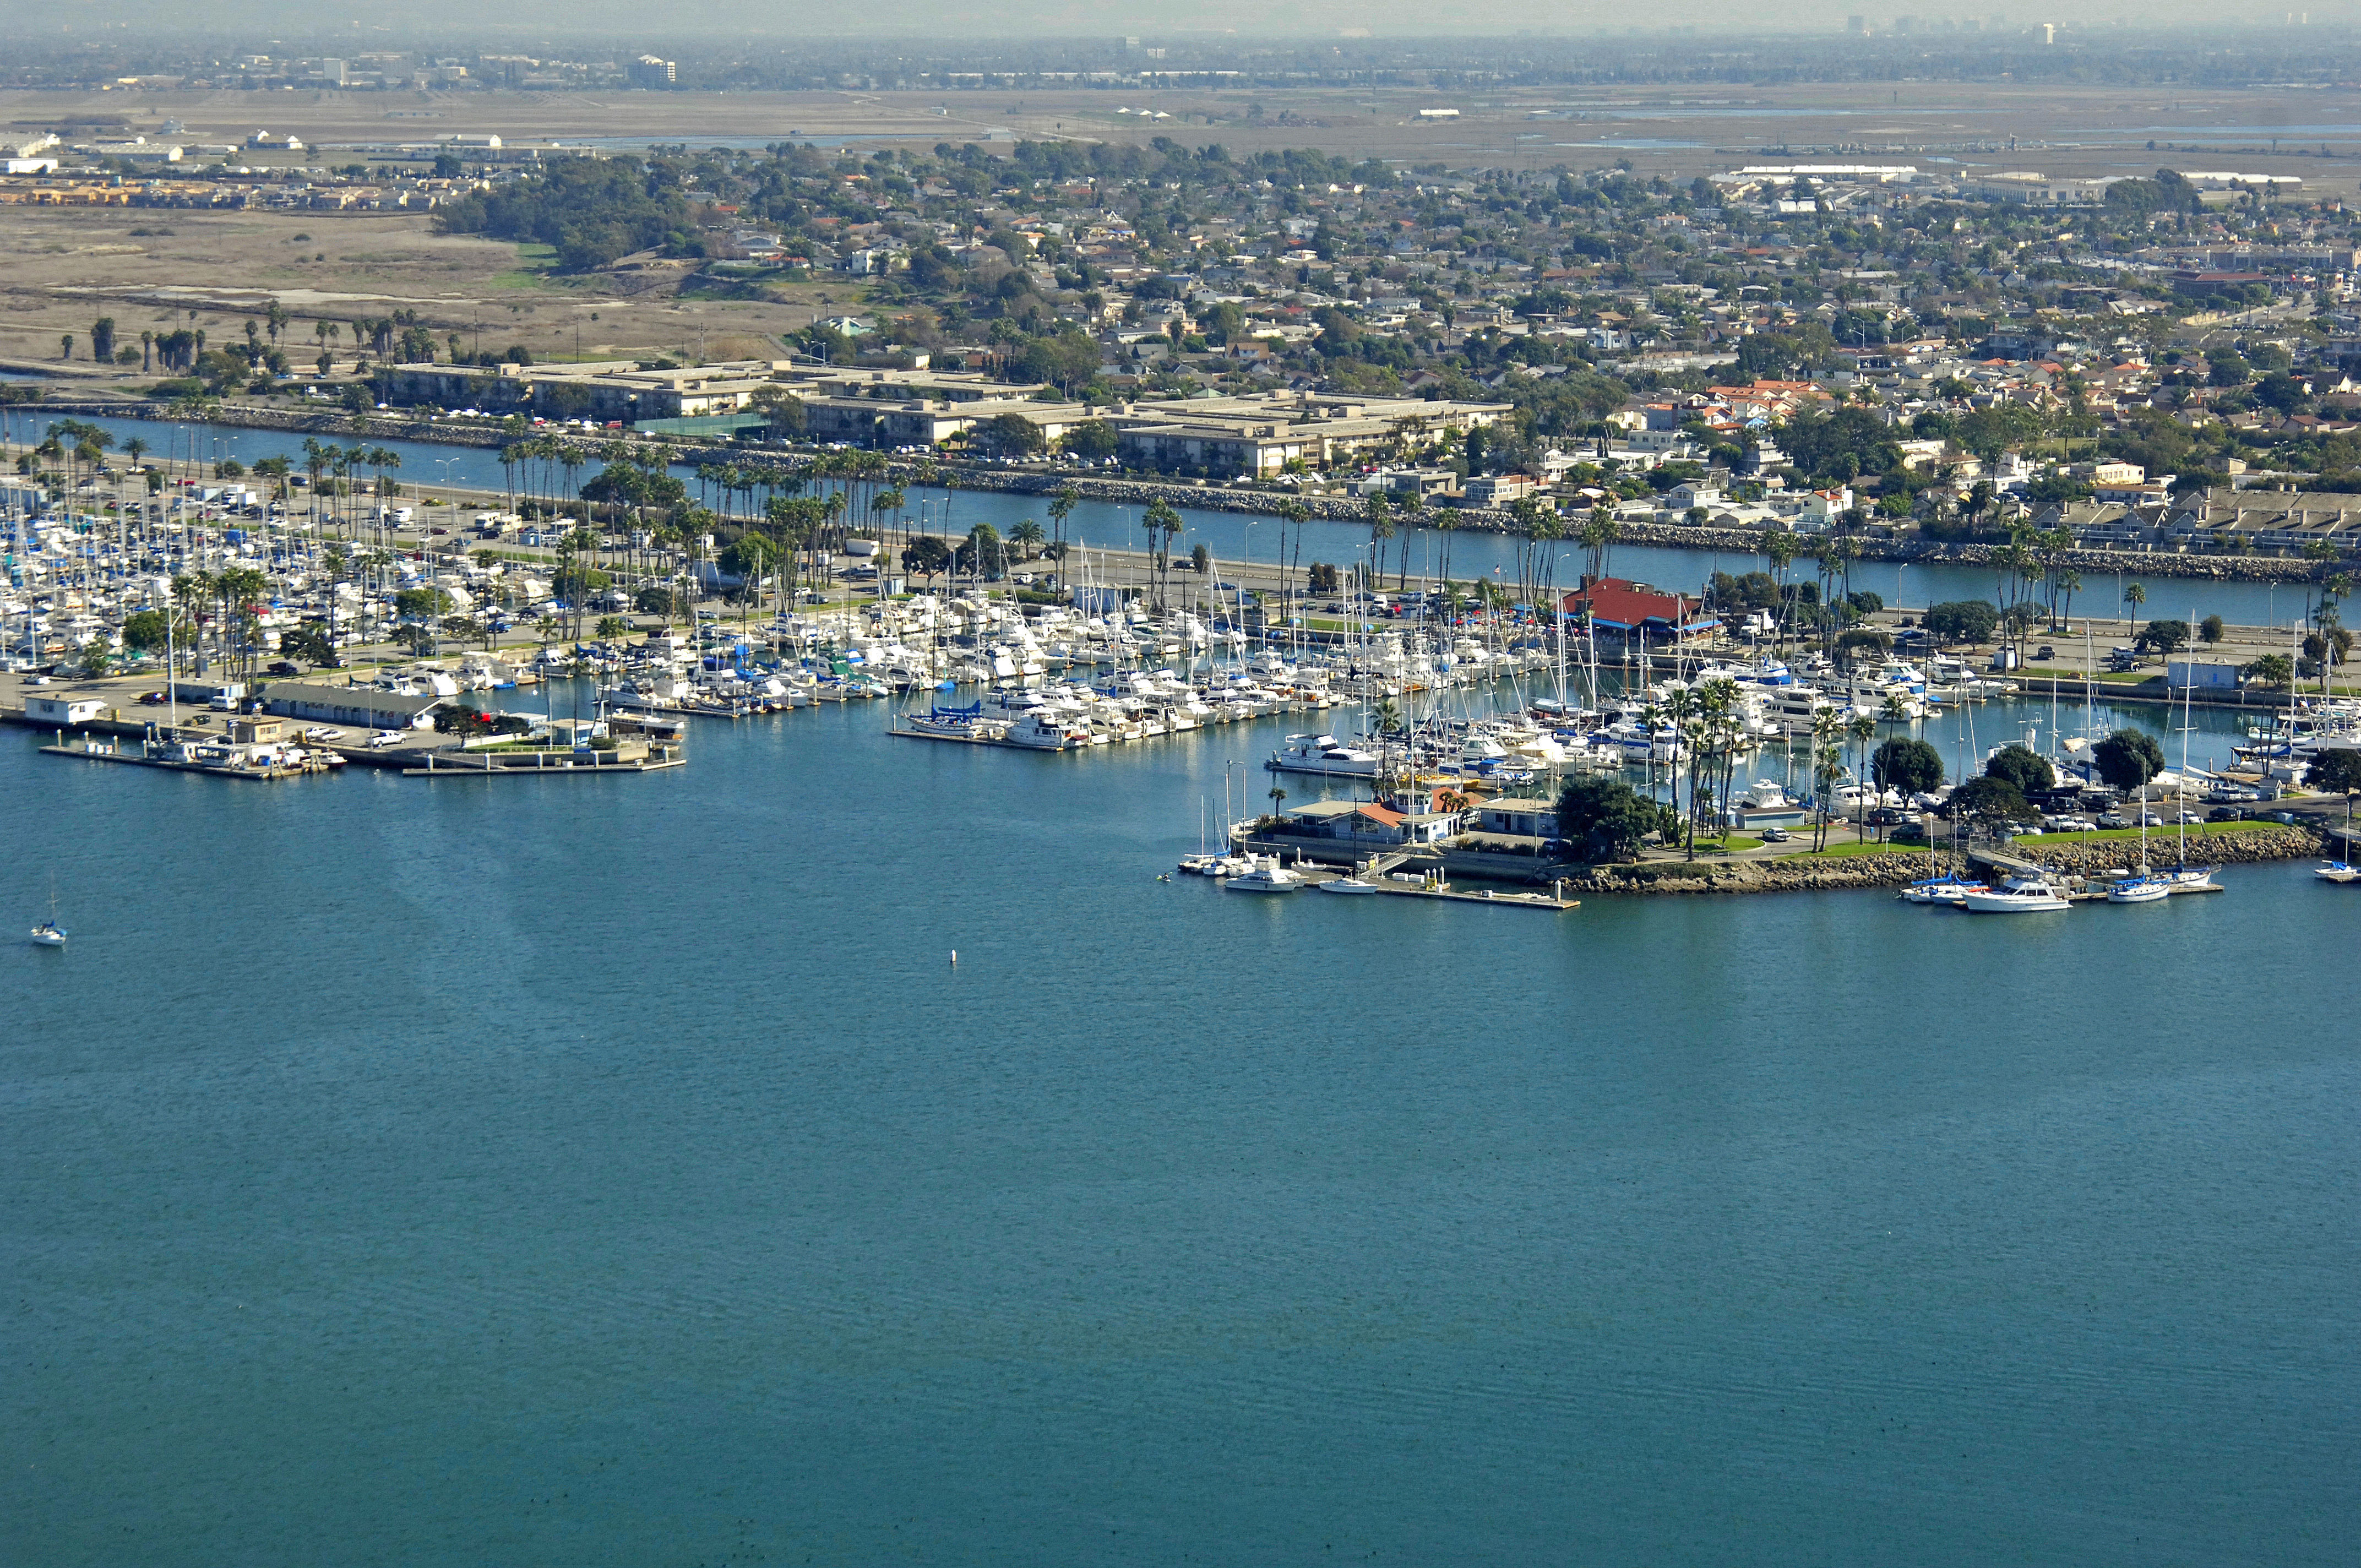 Alamitos Bay-Long Beach Marina in Long Beach, CA, United States